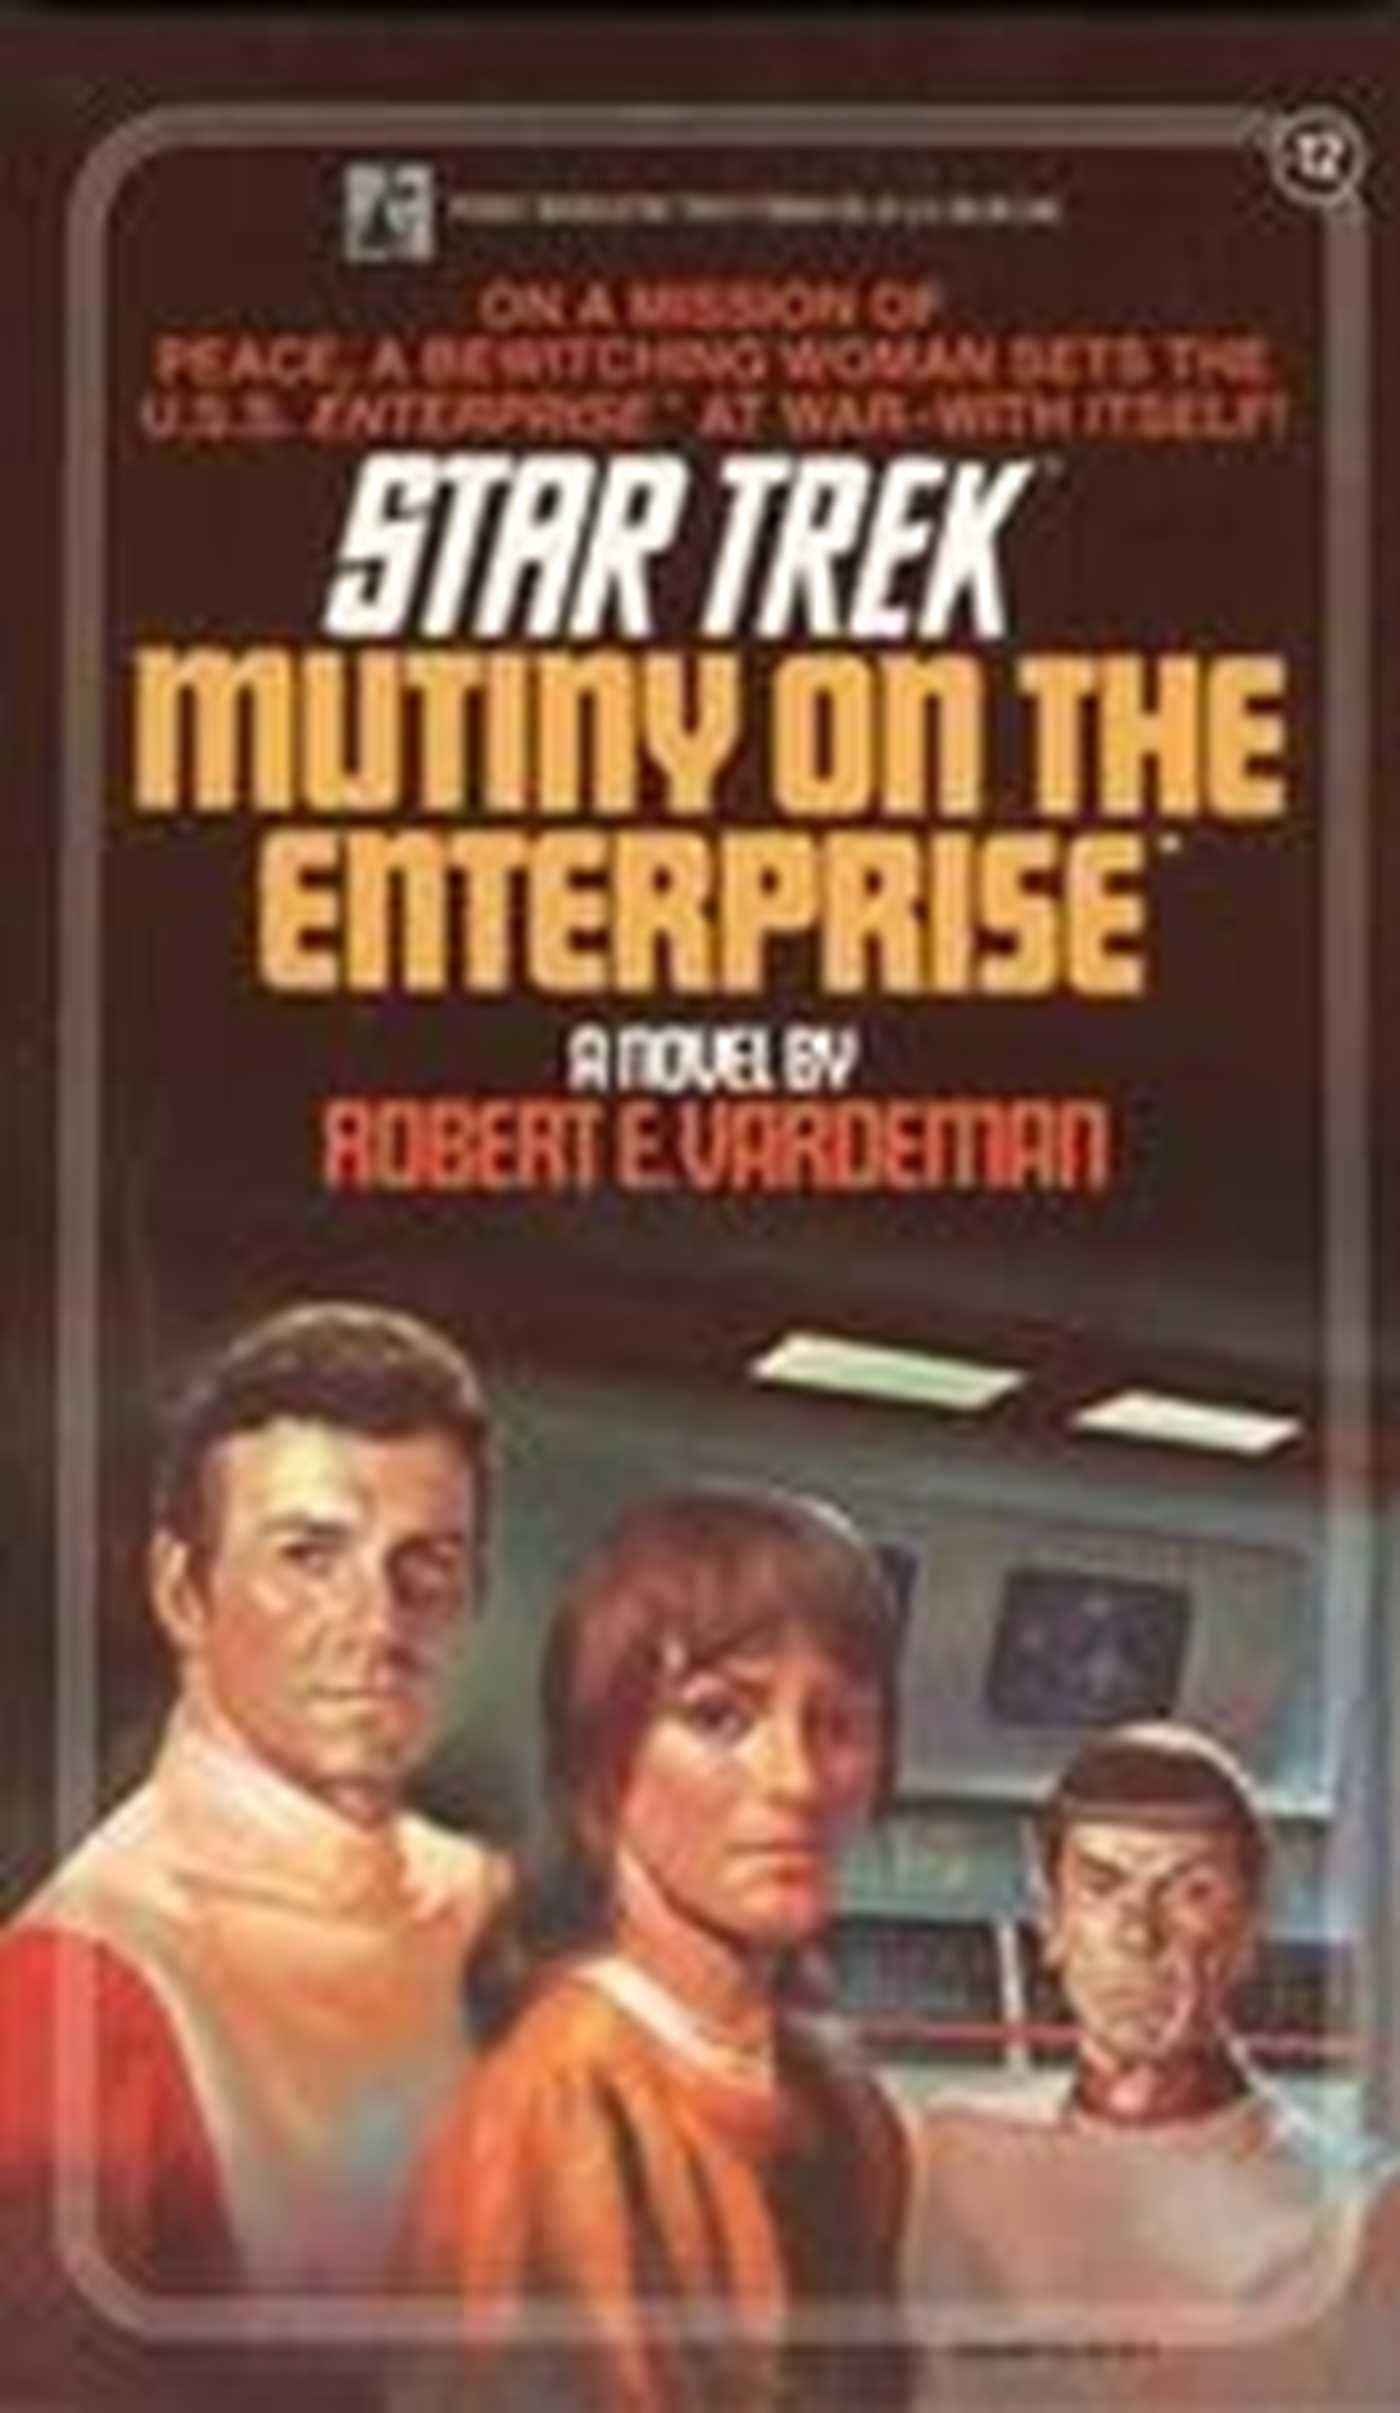 Mutiny on the enterprise 9780743419635 hr